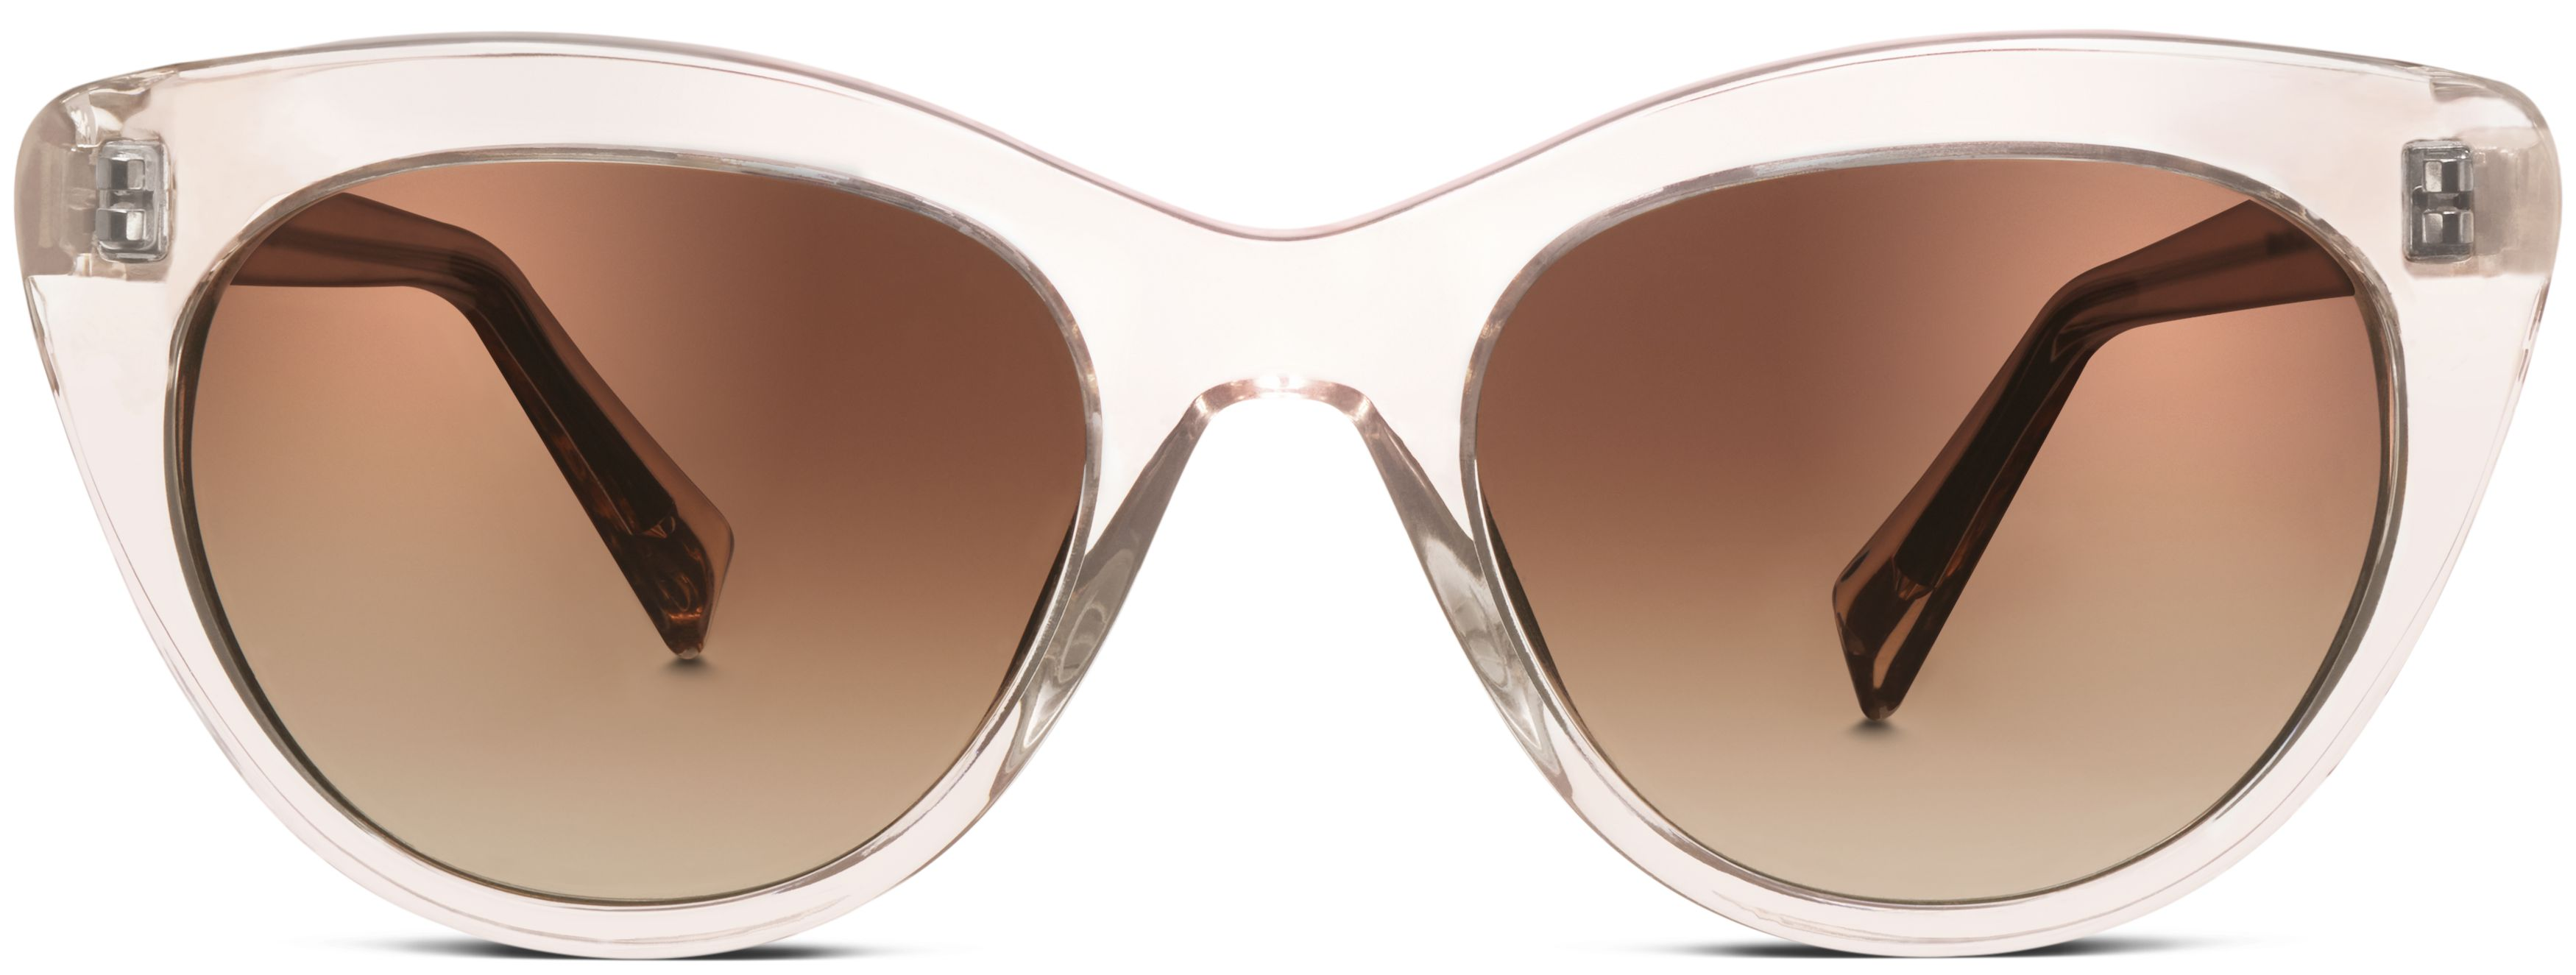 4a400a9d5d Tilley Sunglasses in Grapefruit Soda with Amber Gradient lenses for Women